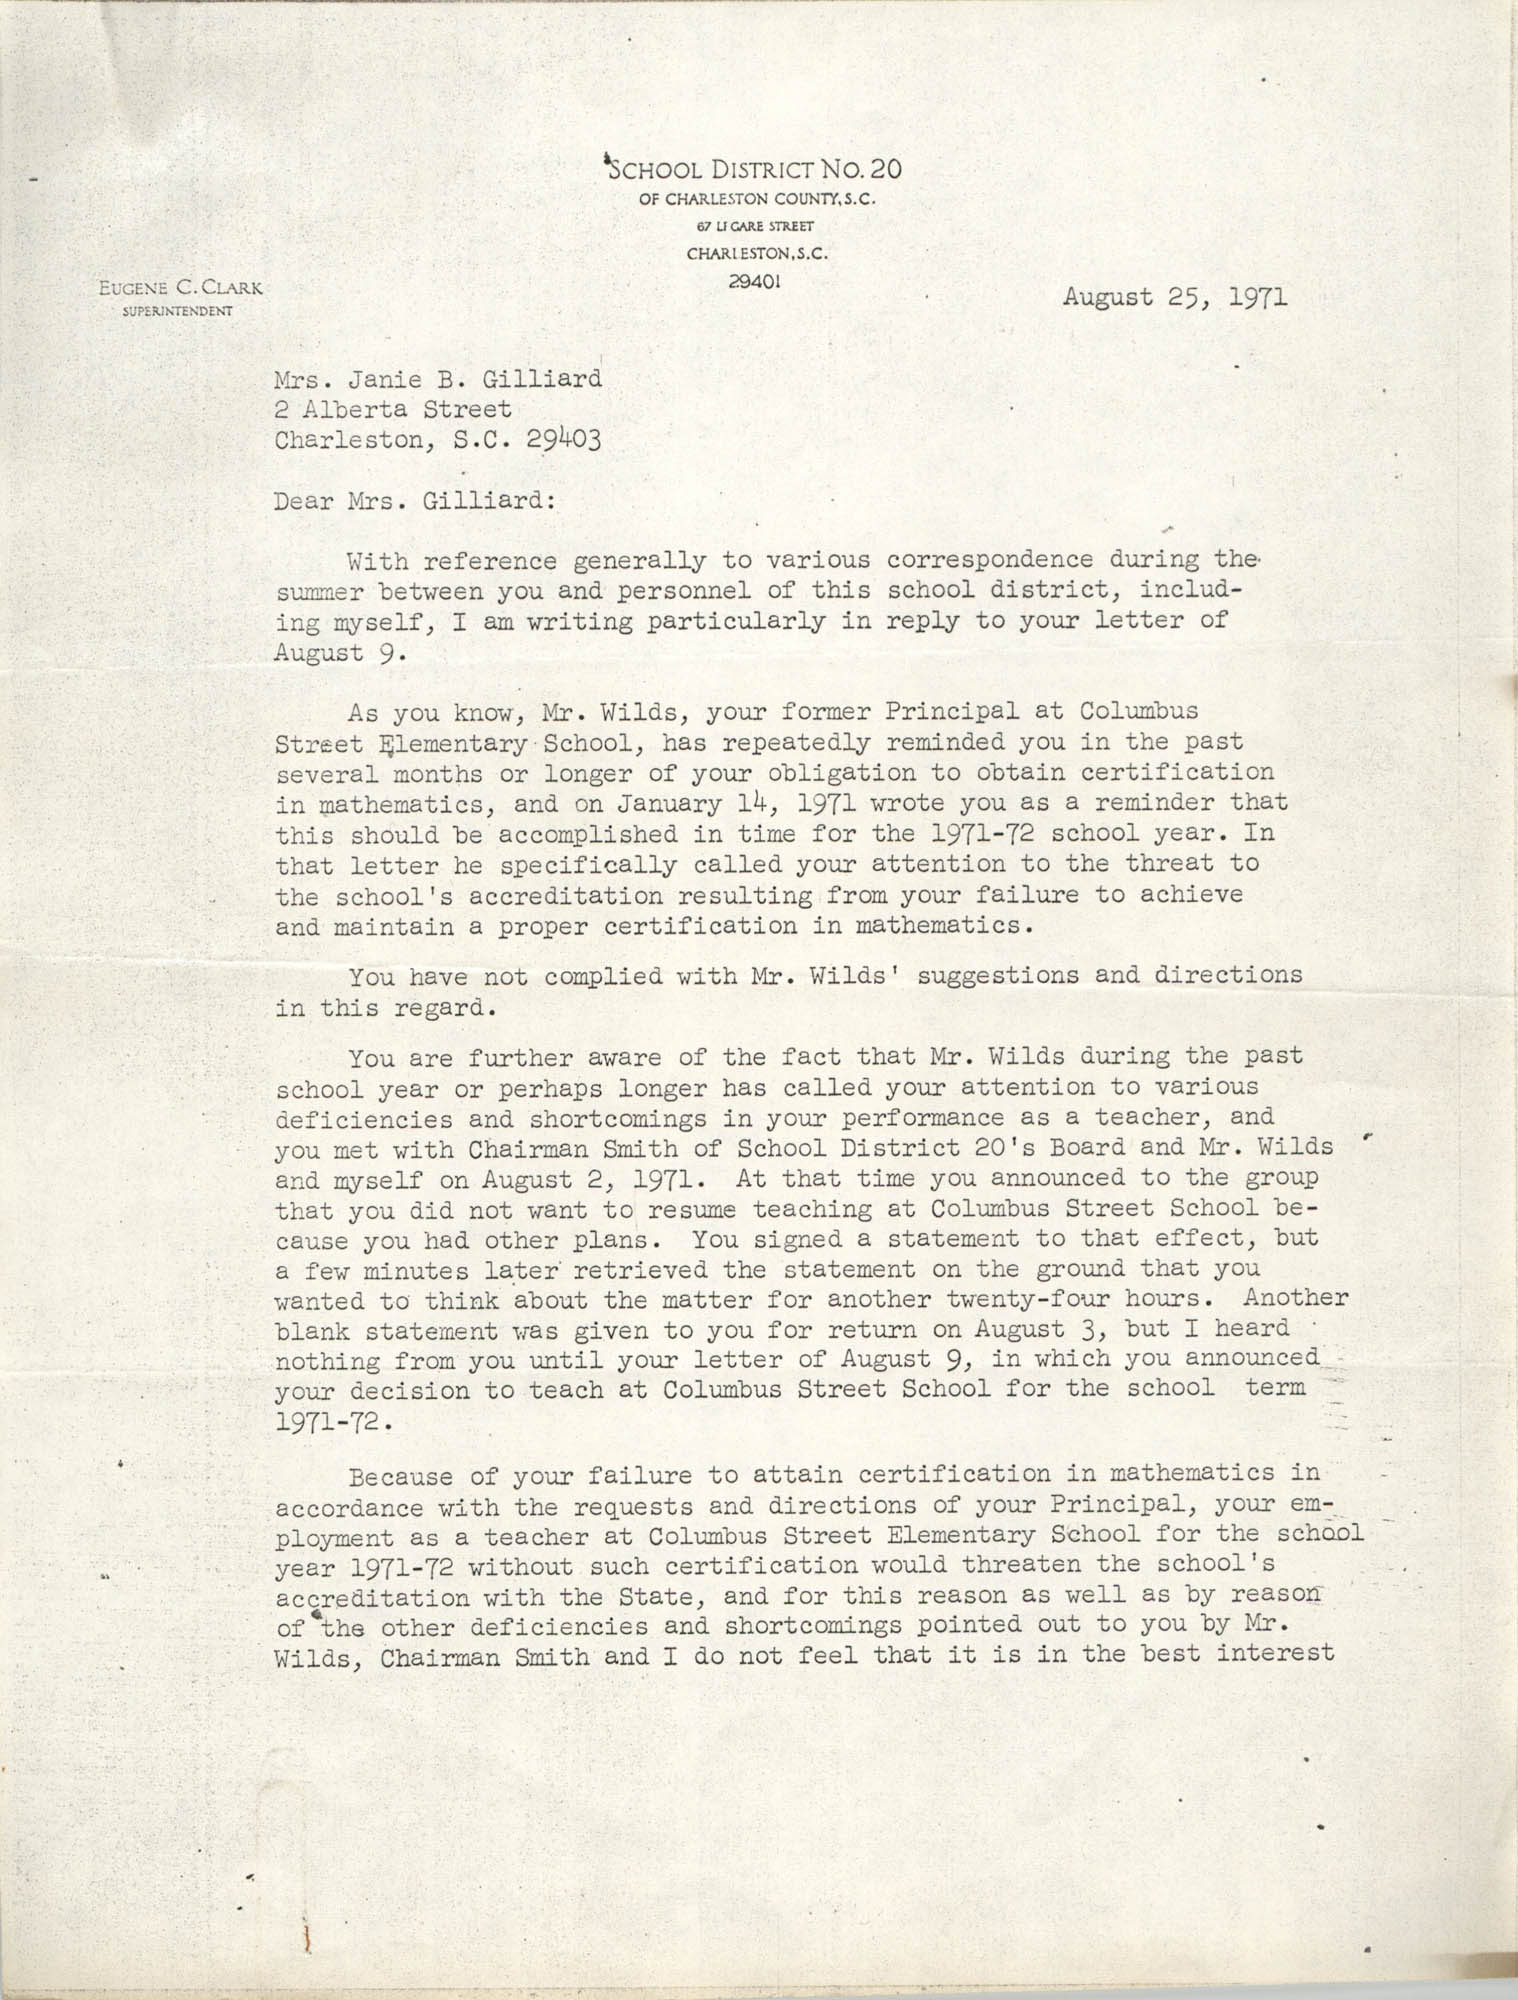 Letter from Eugene C. Clark to Janie B. Gailliard, August 25, 1971